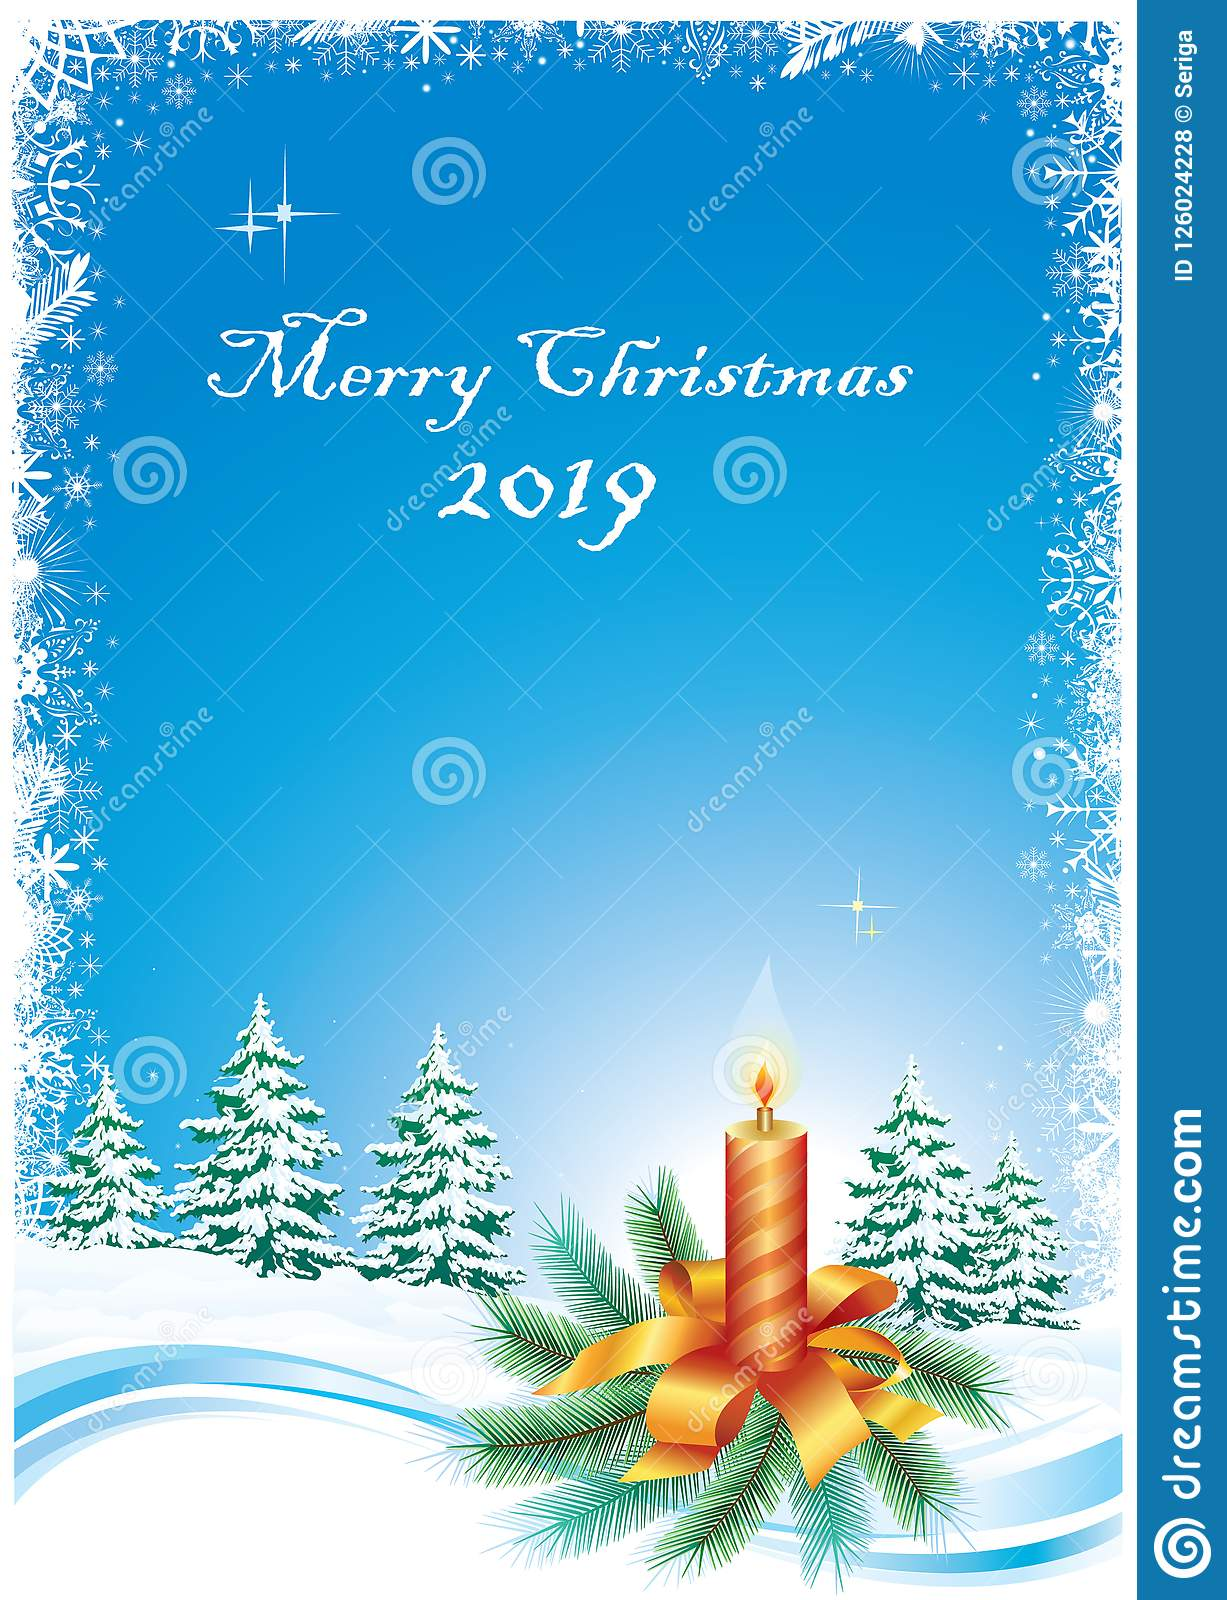 2019 Christmas Background Merry Christmas 2019 Background Stock Vector   Illustration of